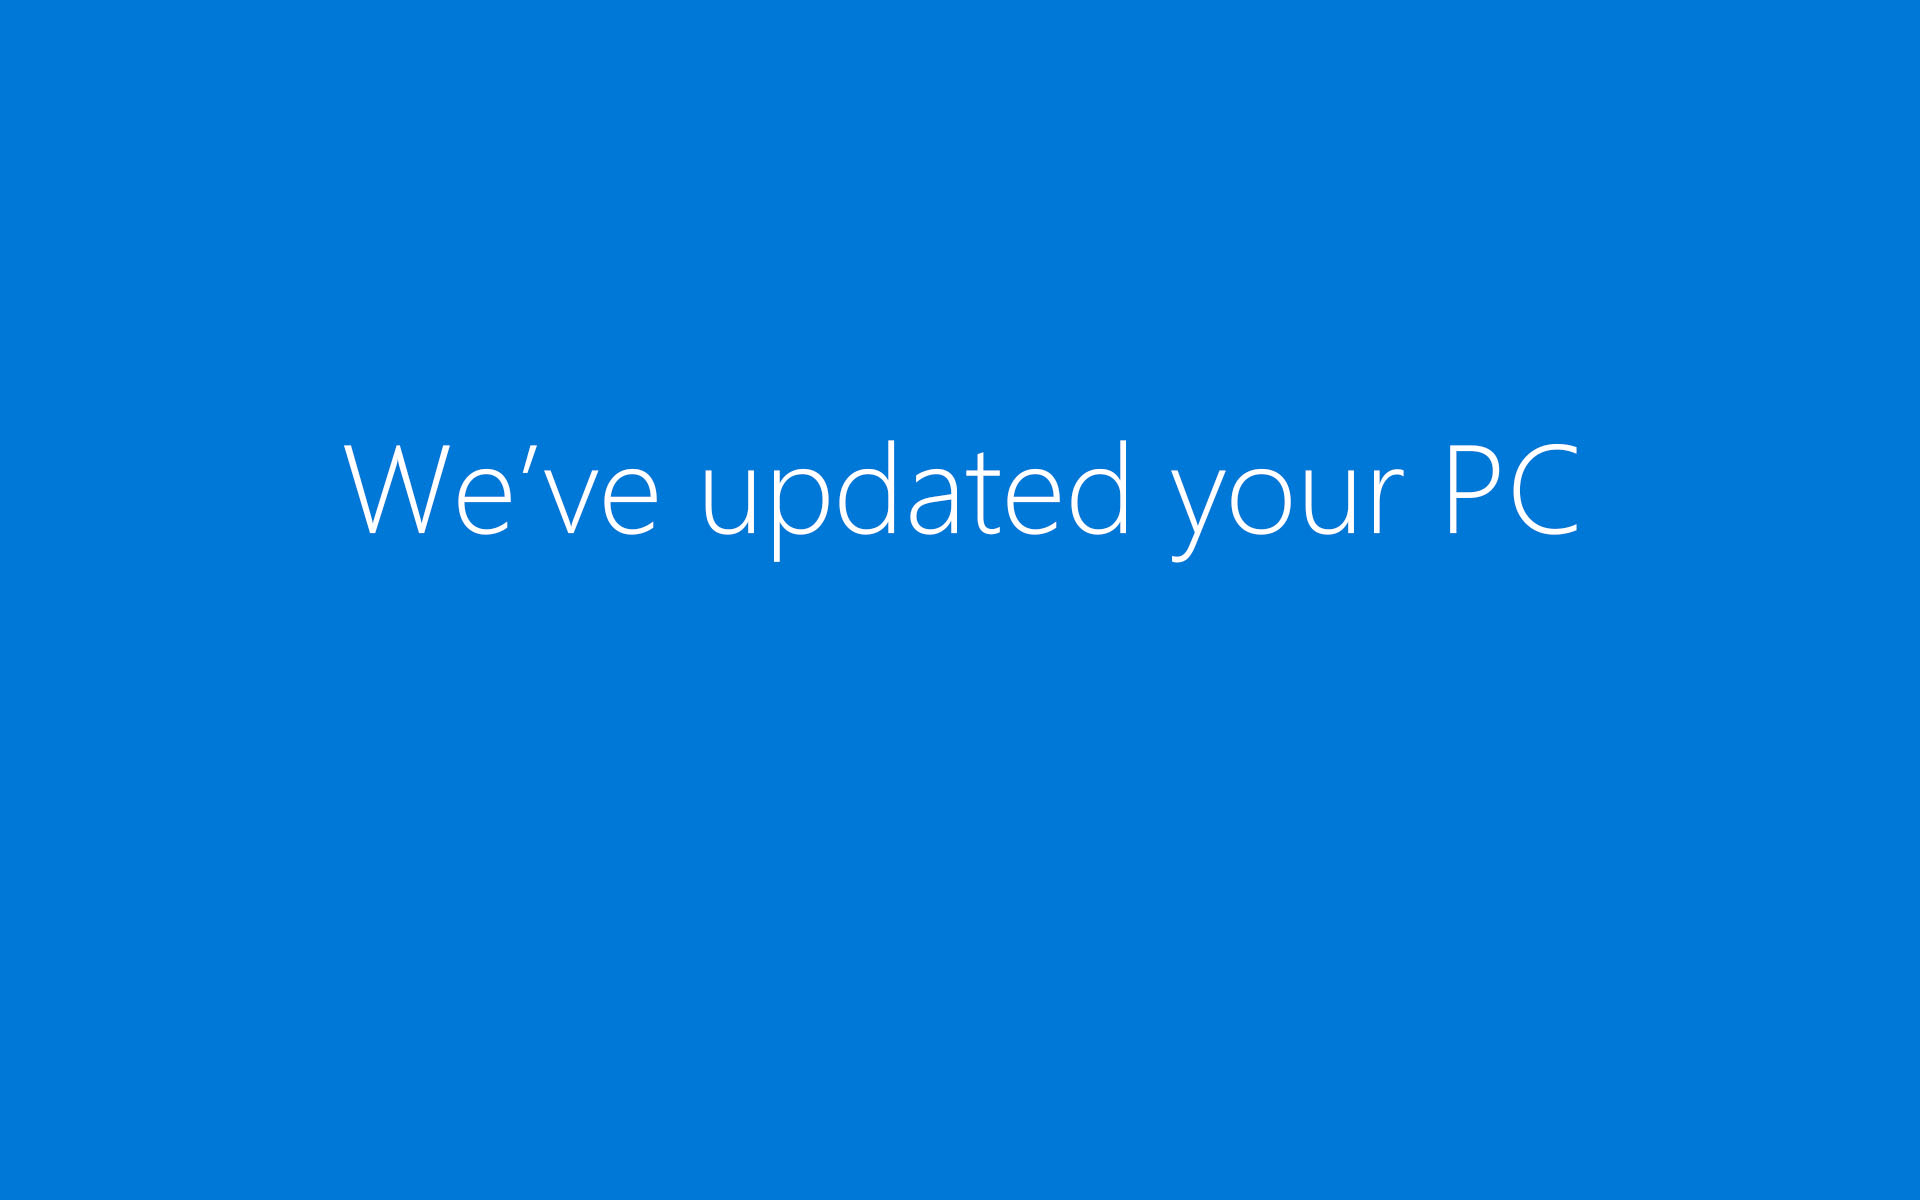 Anniversary Update is Live Now for PCs, Guide to download the update